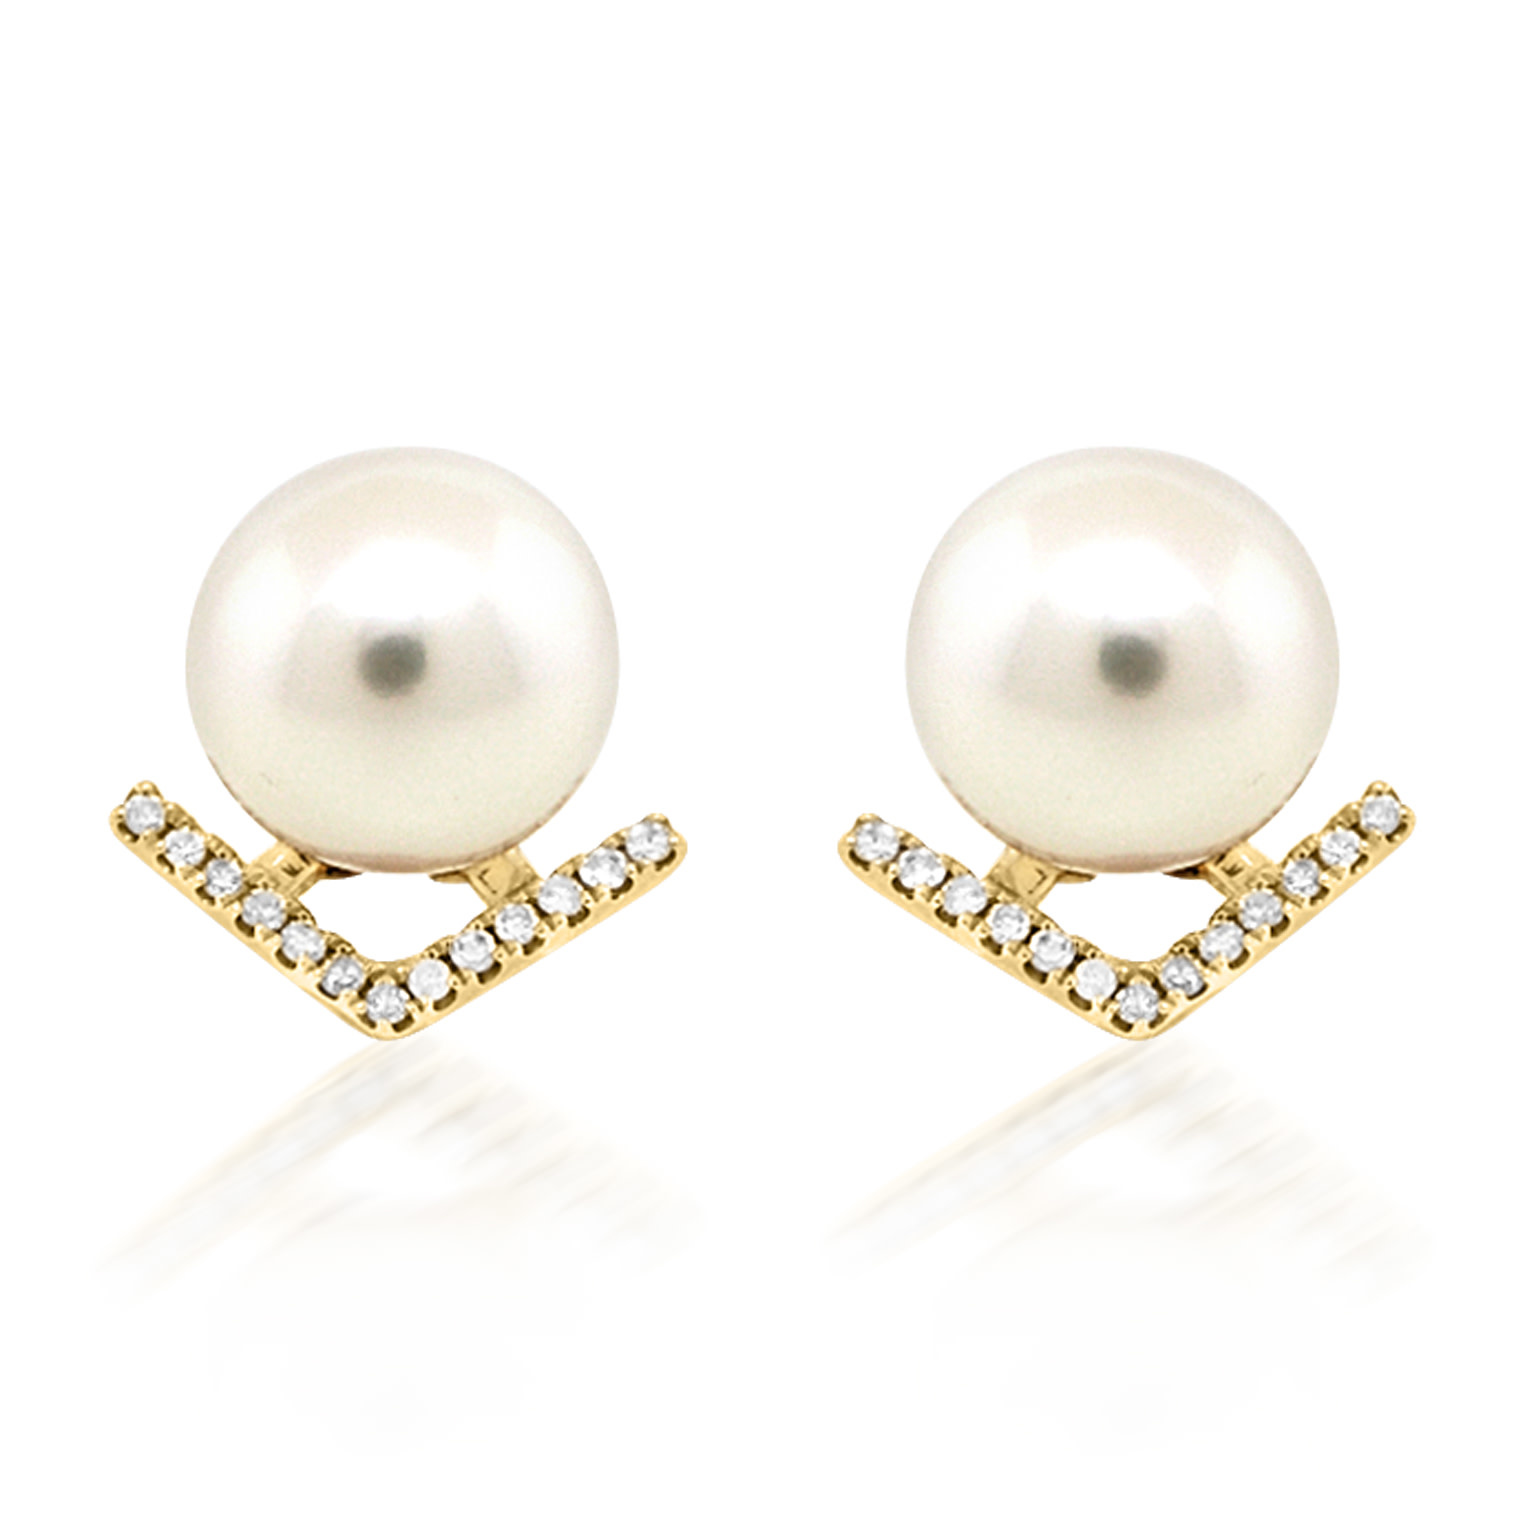 Trabert Goldsmiths Pearl and Diamond V Stud Earrings